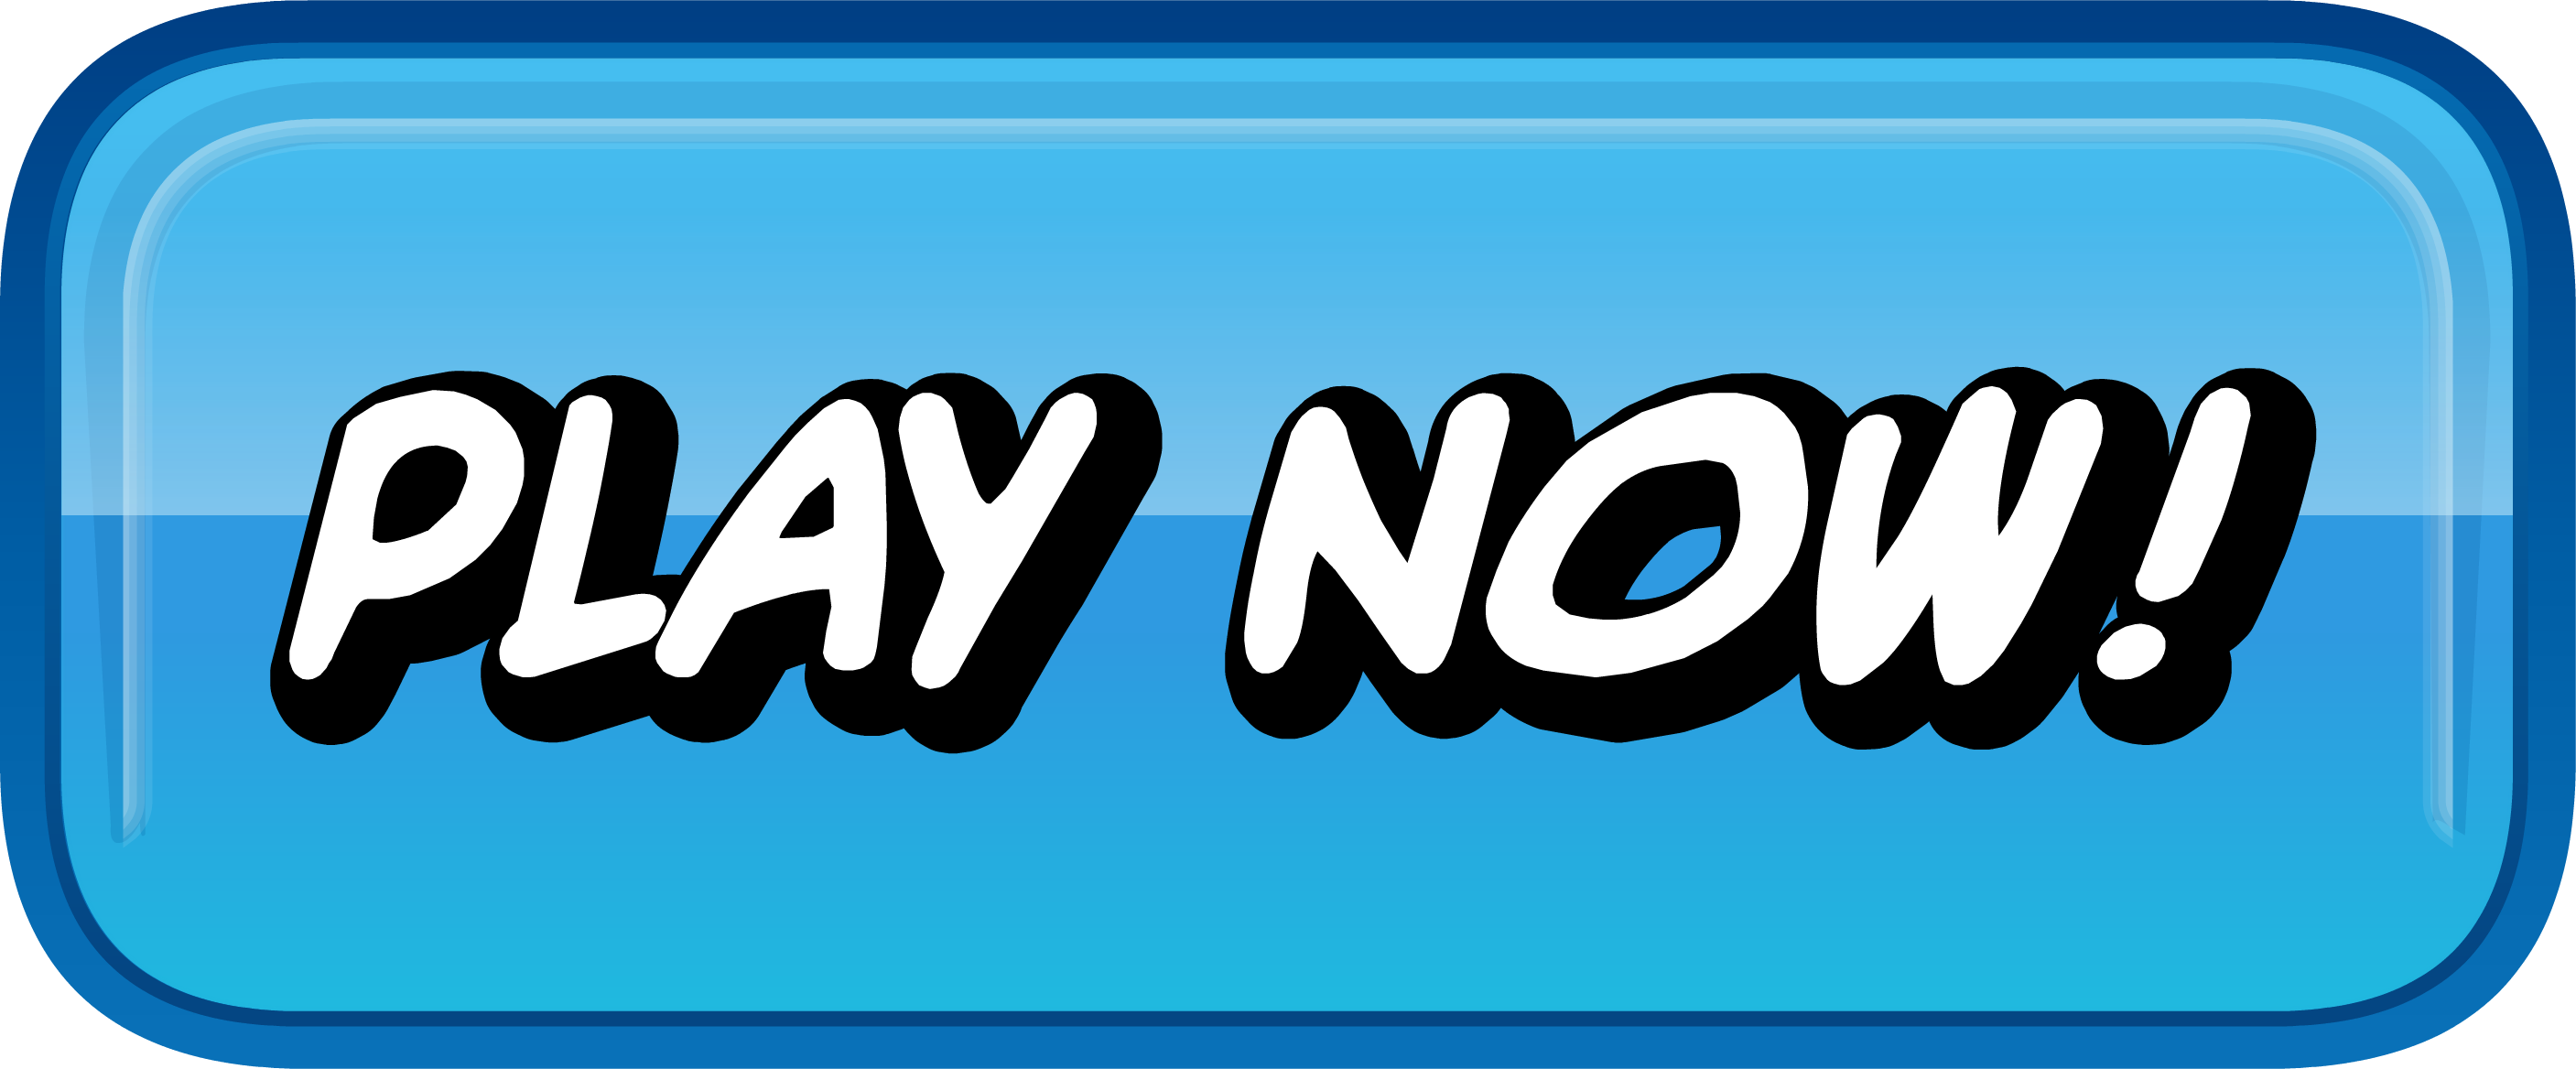 Beach Casino Slot Online | PLAY NOW